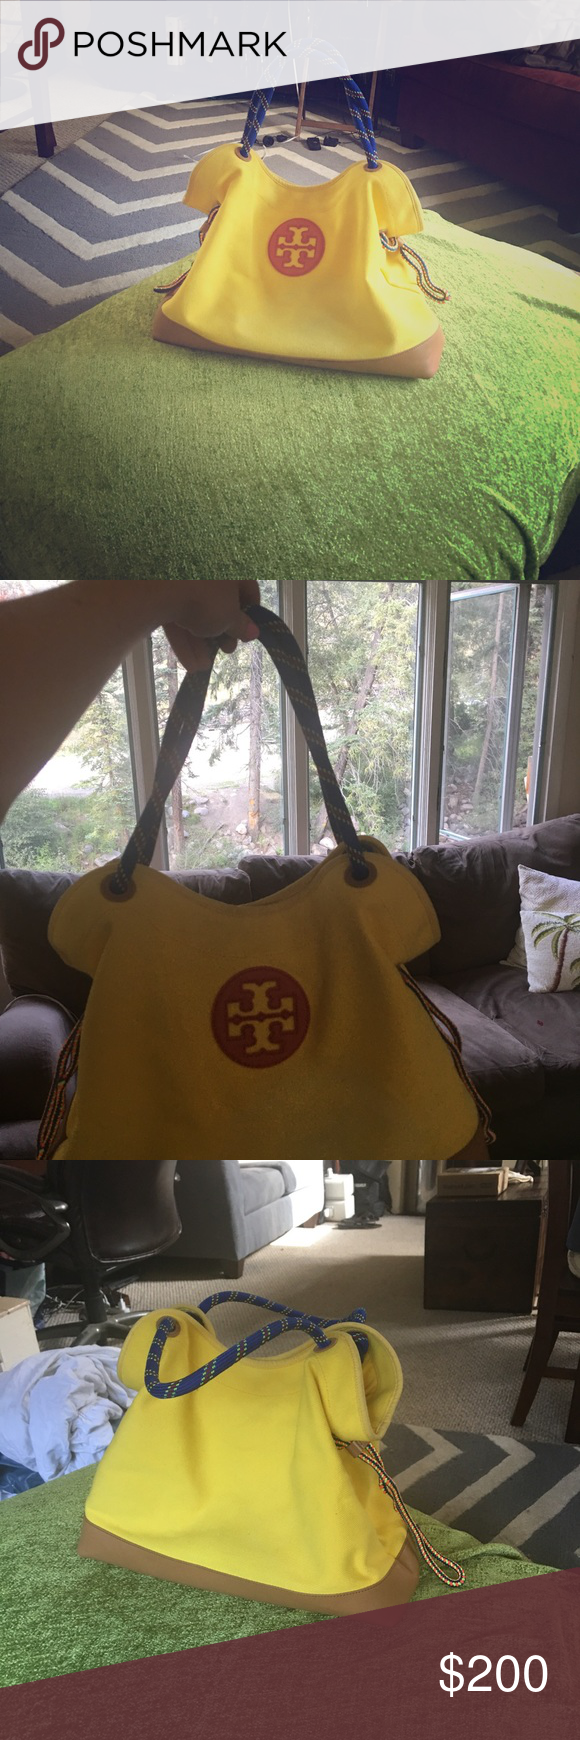 749c9f6cc782 Tory Burch Kellyn Canvas Tote Bag